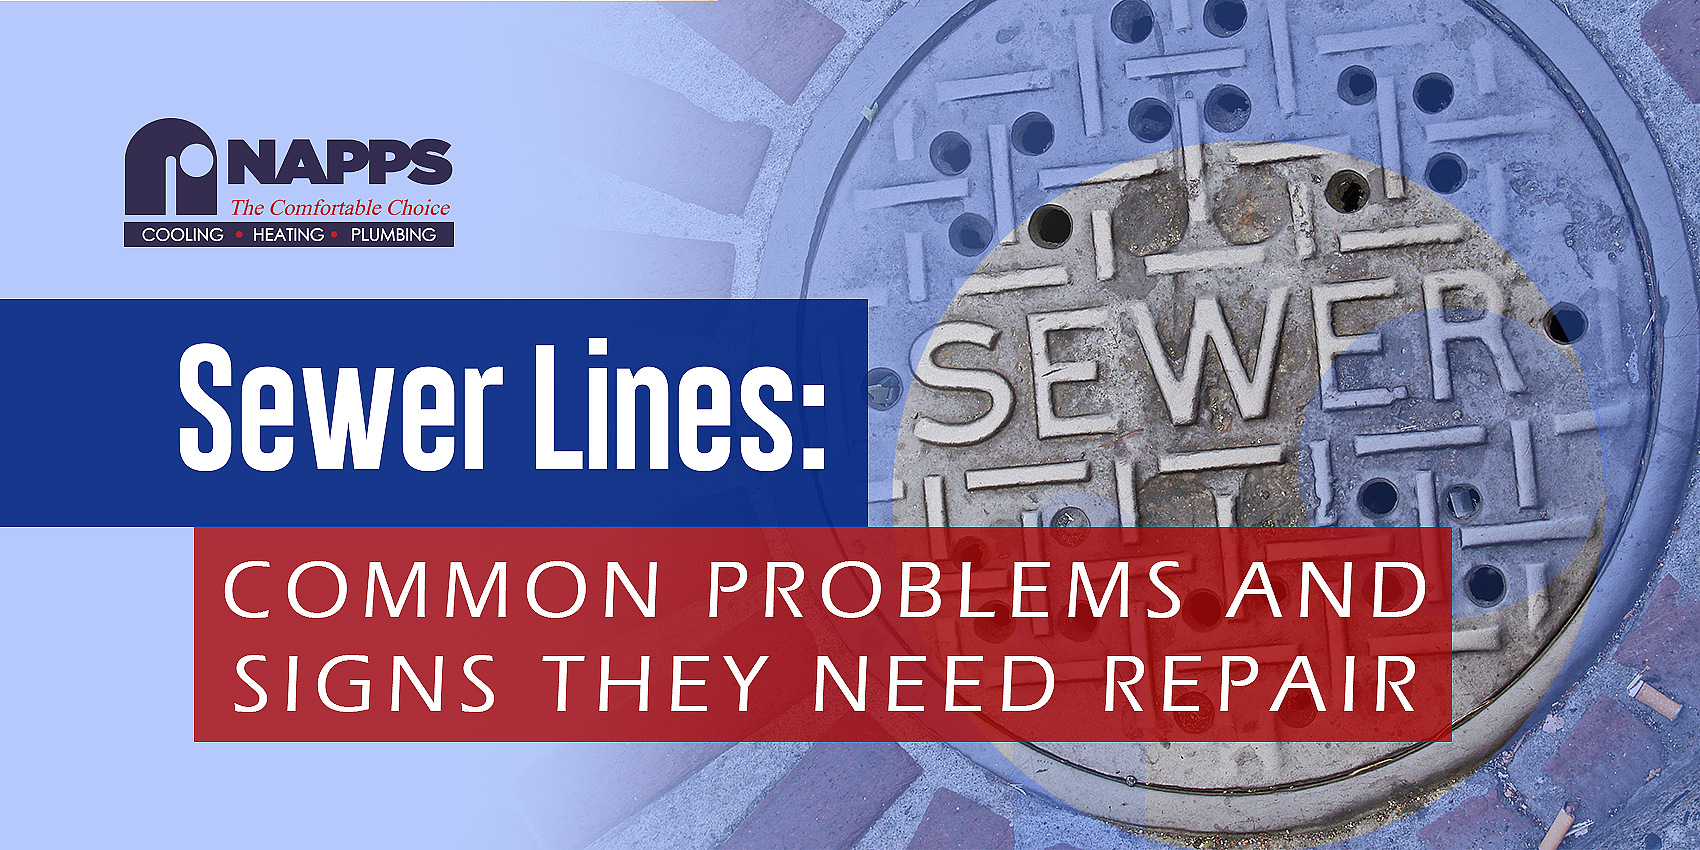 Sewer Lines: Common Problems and Signs They Need Repair